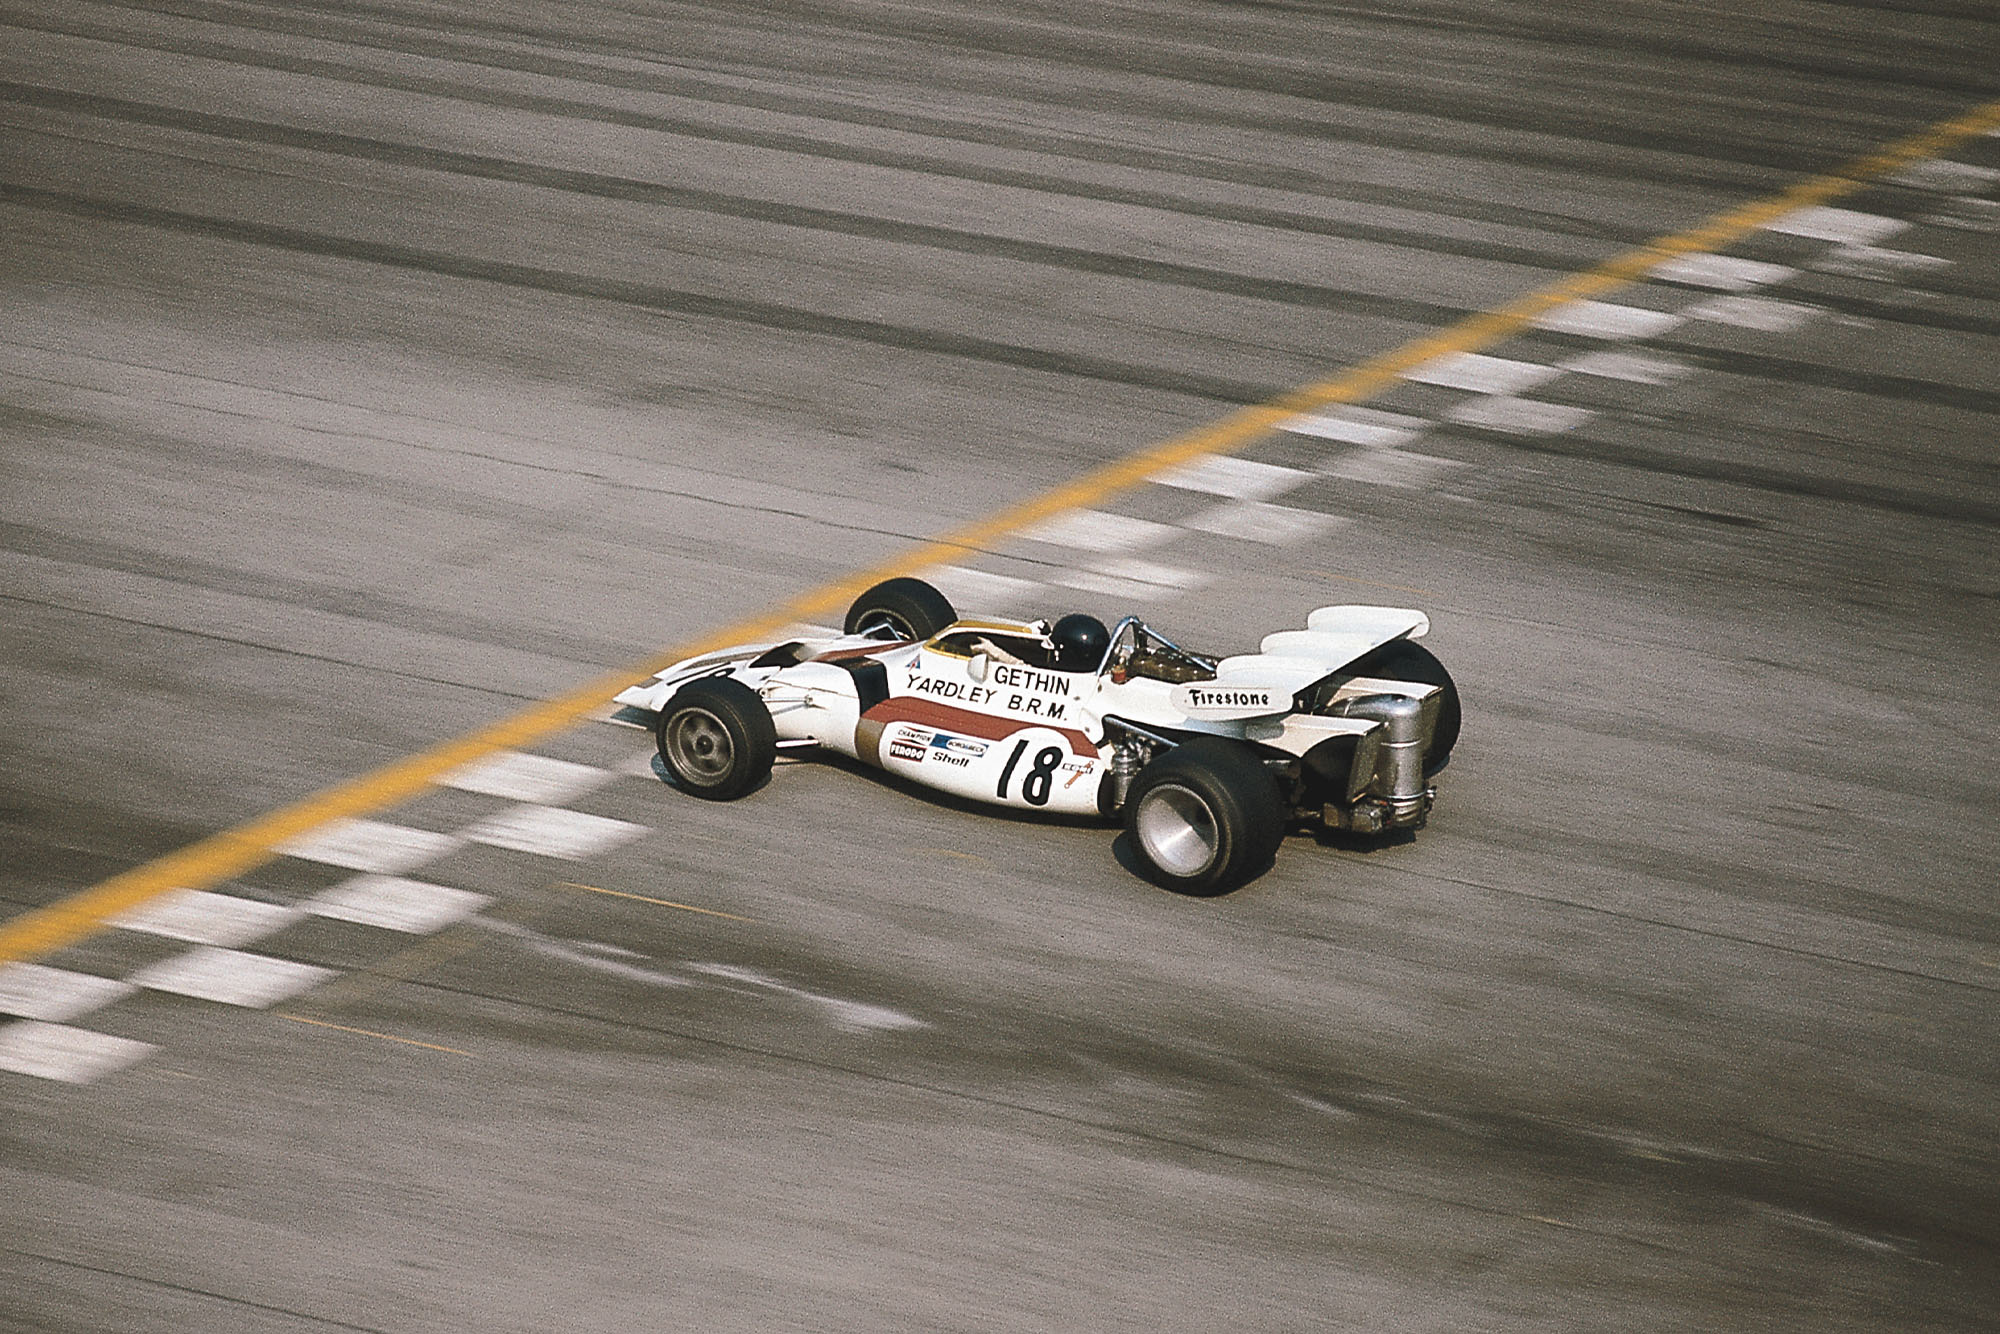 Peter Gethin driving for BRM at the 1971 Italian Grand Prix.